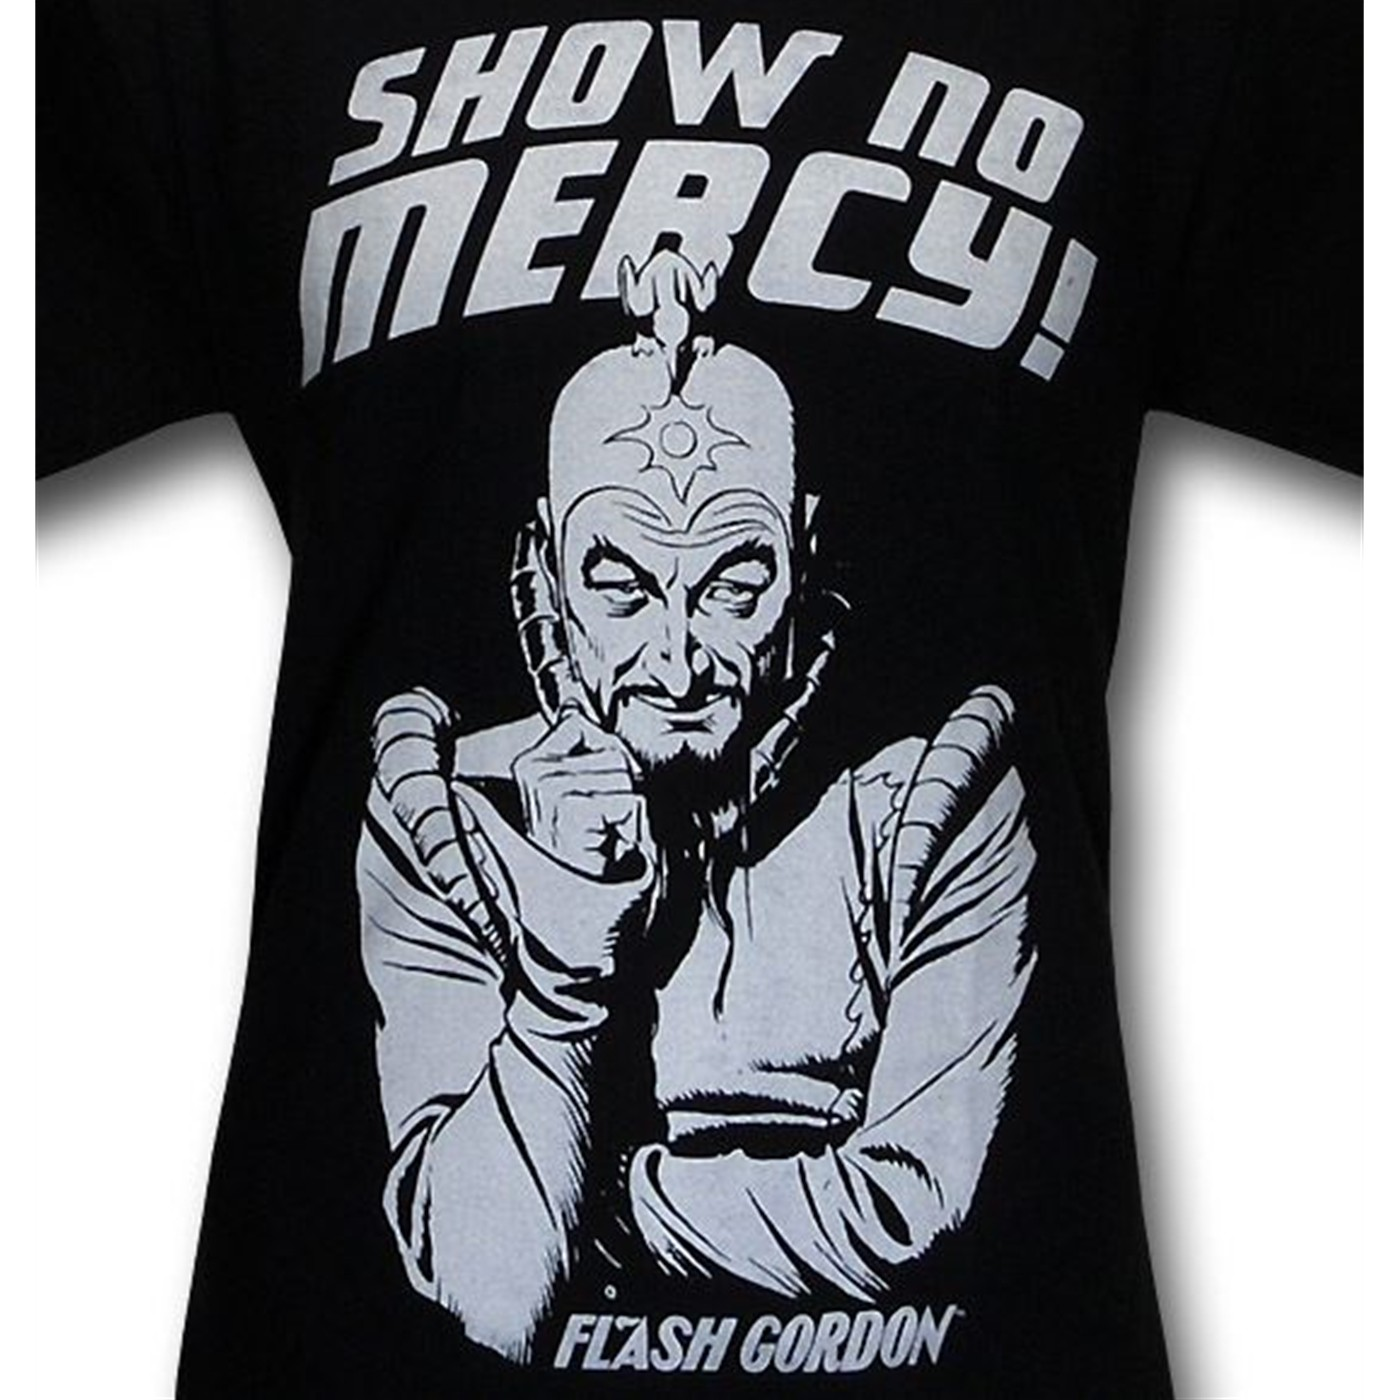 Ming The Merciless Show No Mercy! T-Shirt